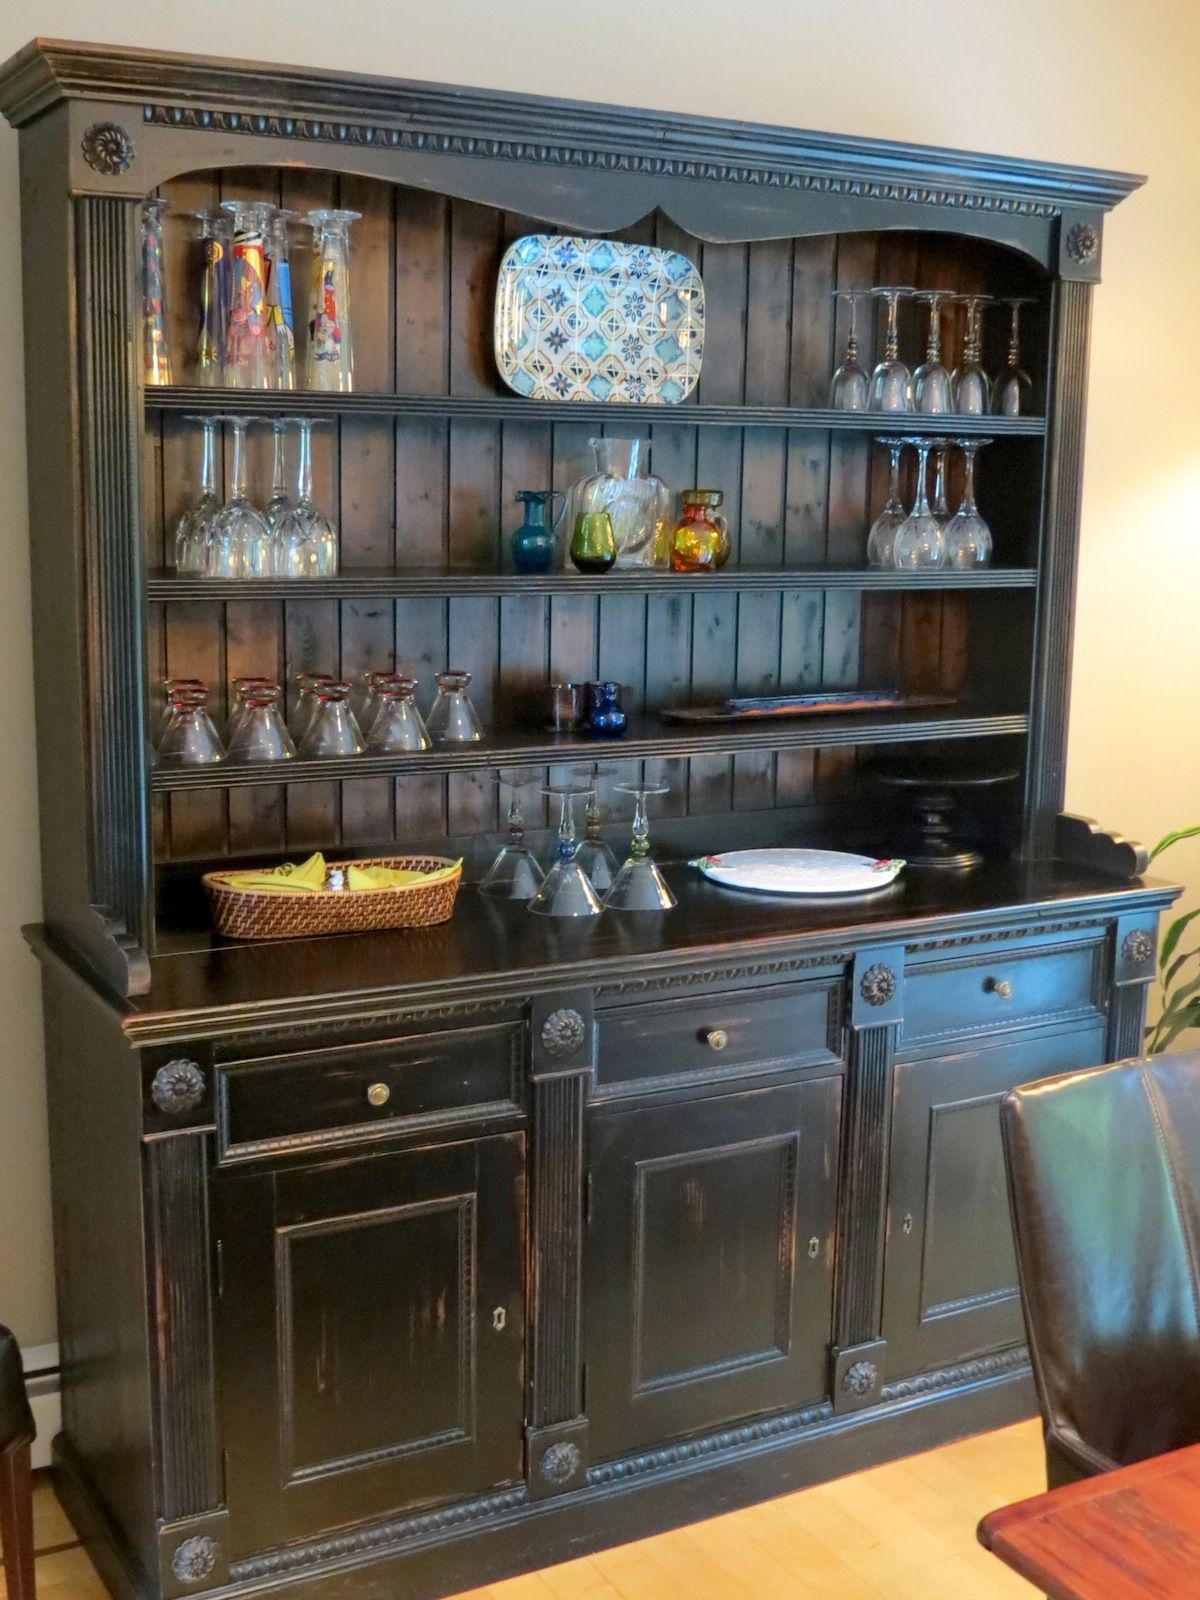 I Want This With Images Rustic Kitchen Cabinets Rustic